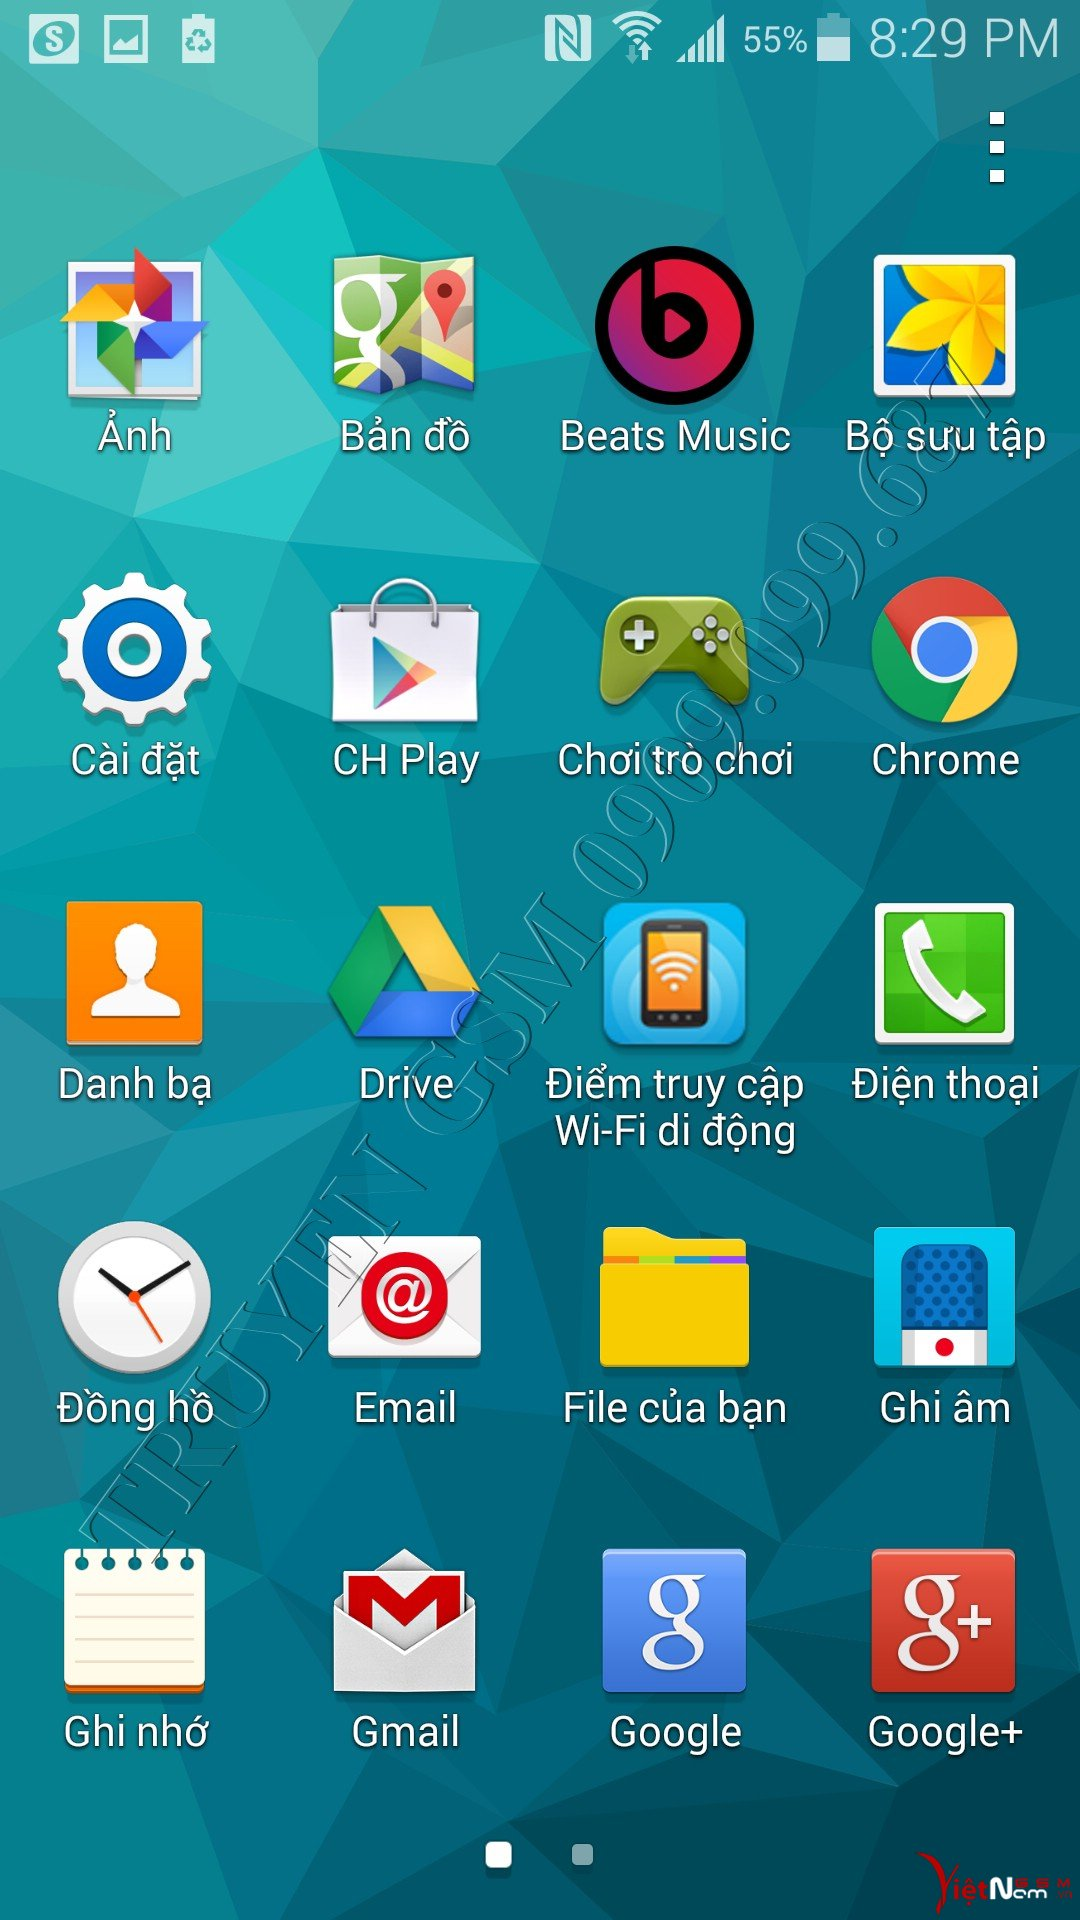 Screenshot_2014-10-03-20-29-52.jpg